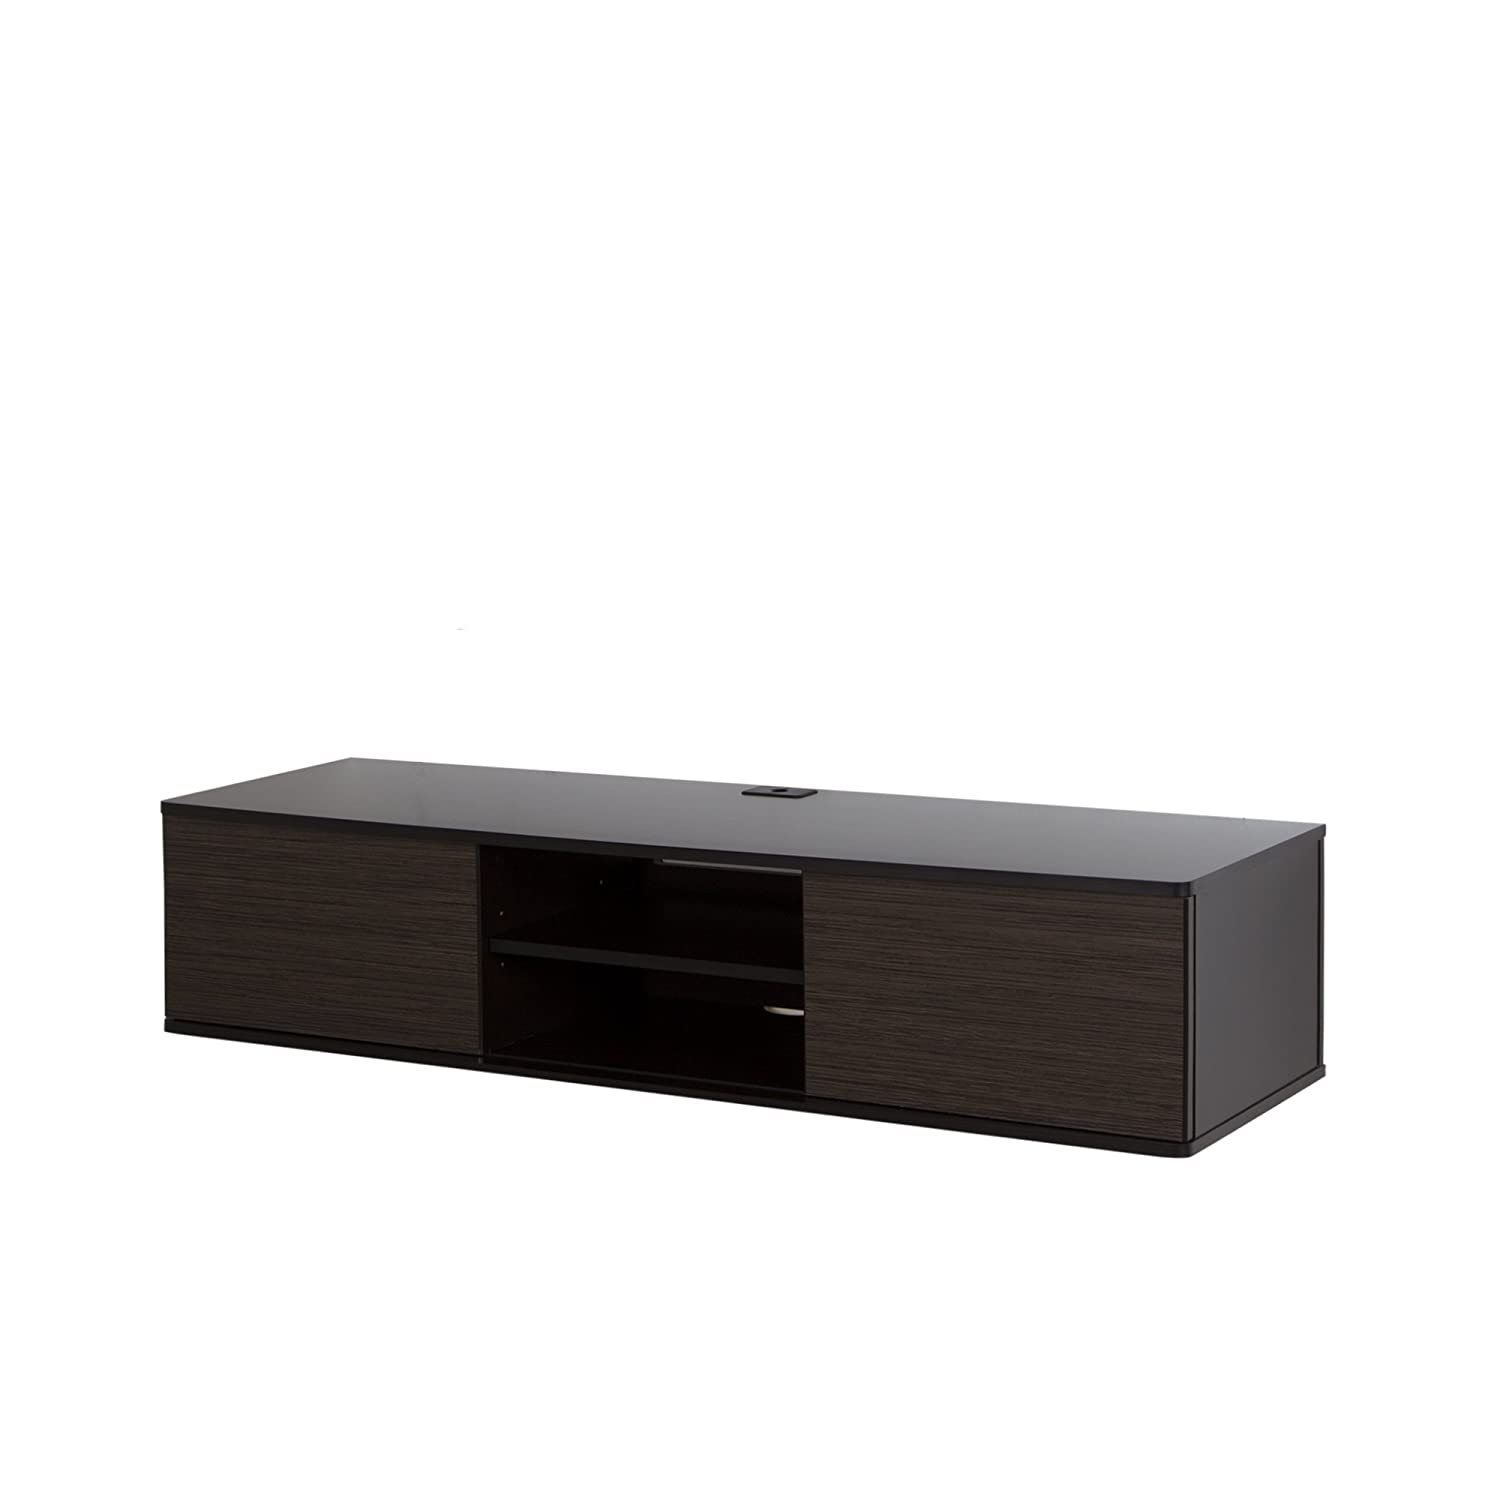 South Shore Furniture Agora Wall Mounted Media Console 56 Inch  # Meuble Tv Metal Noir